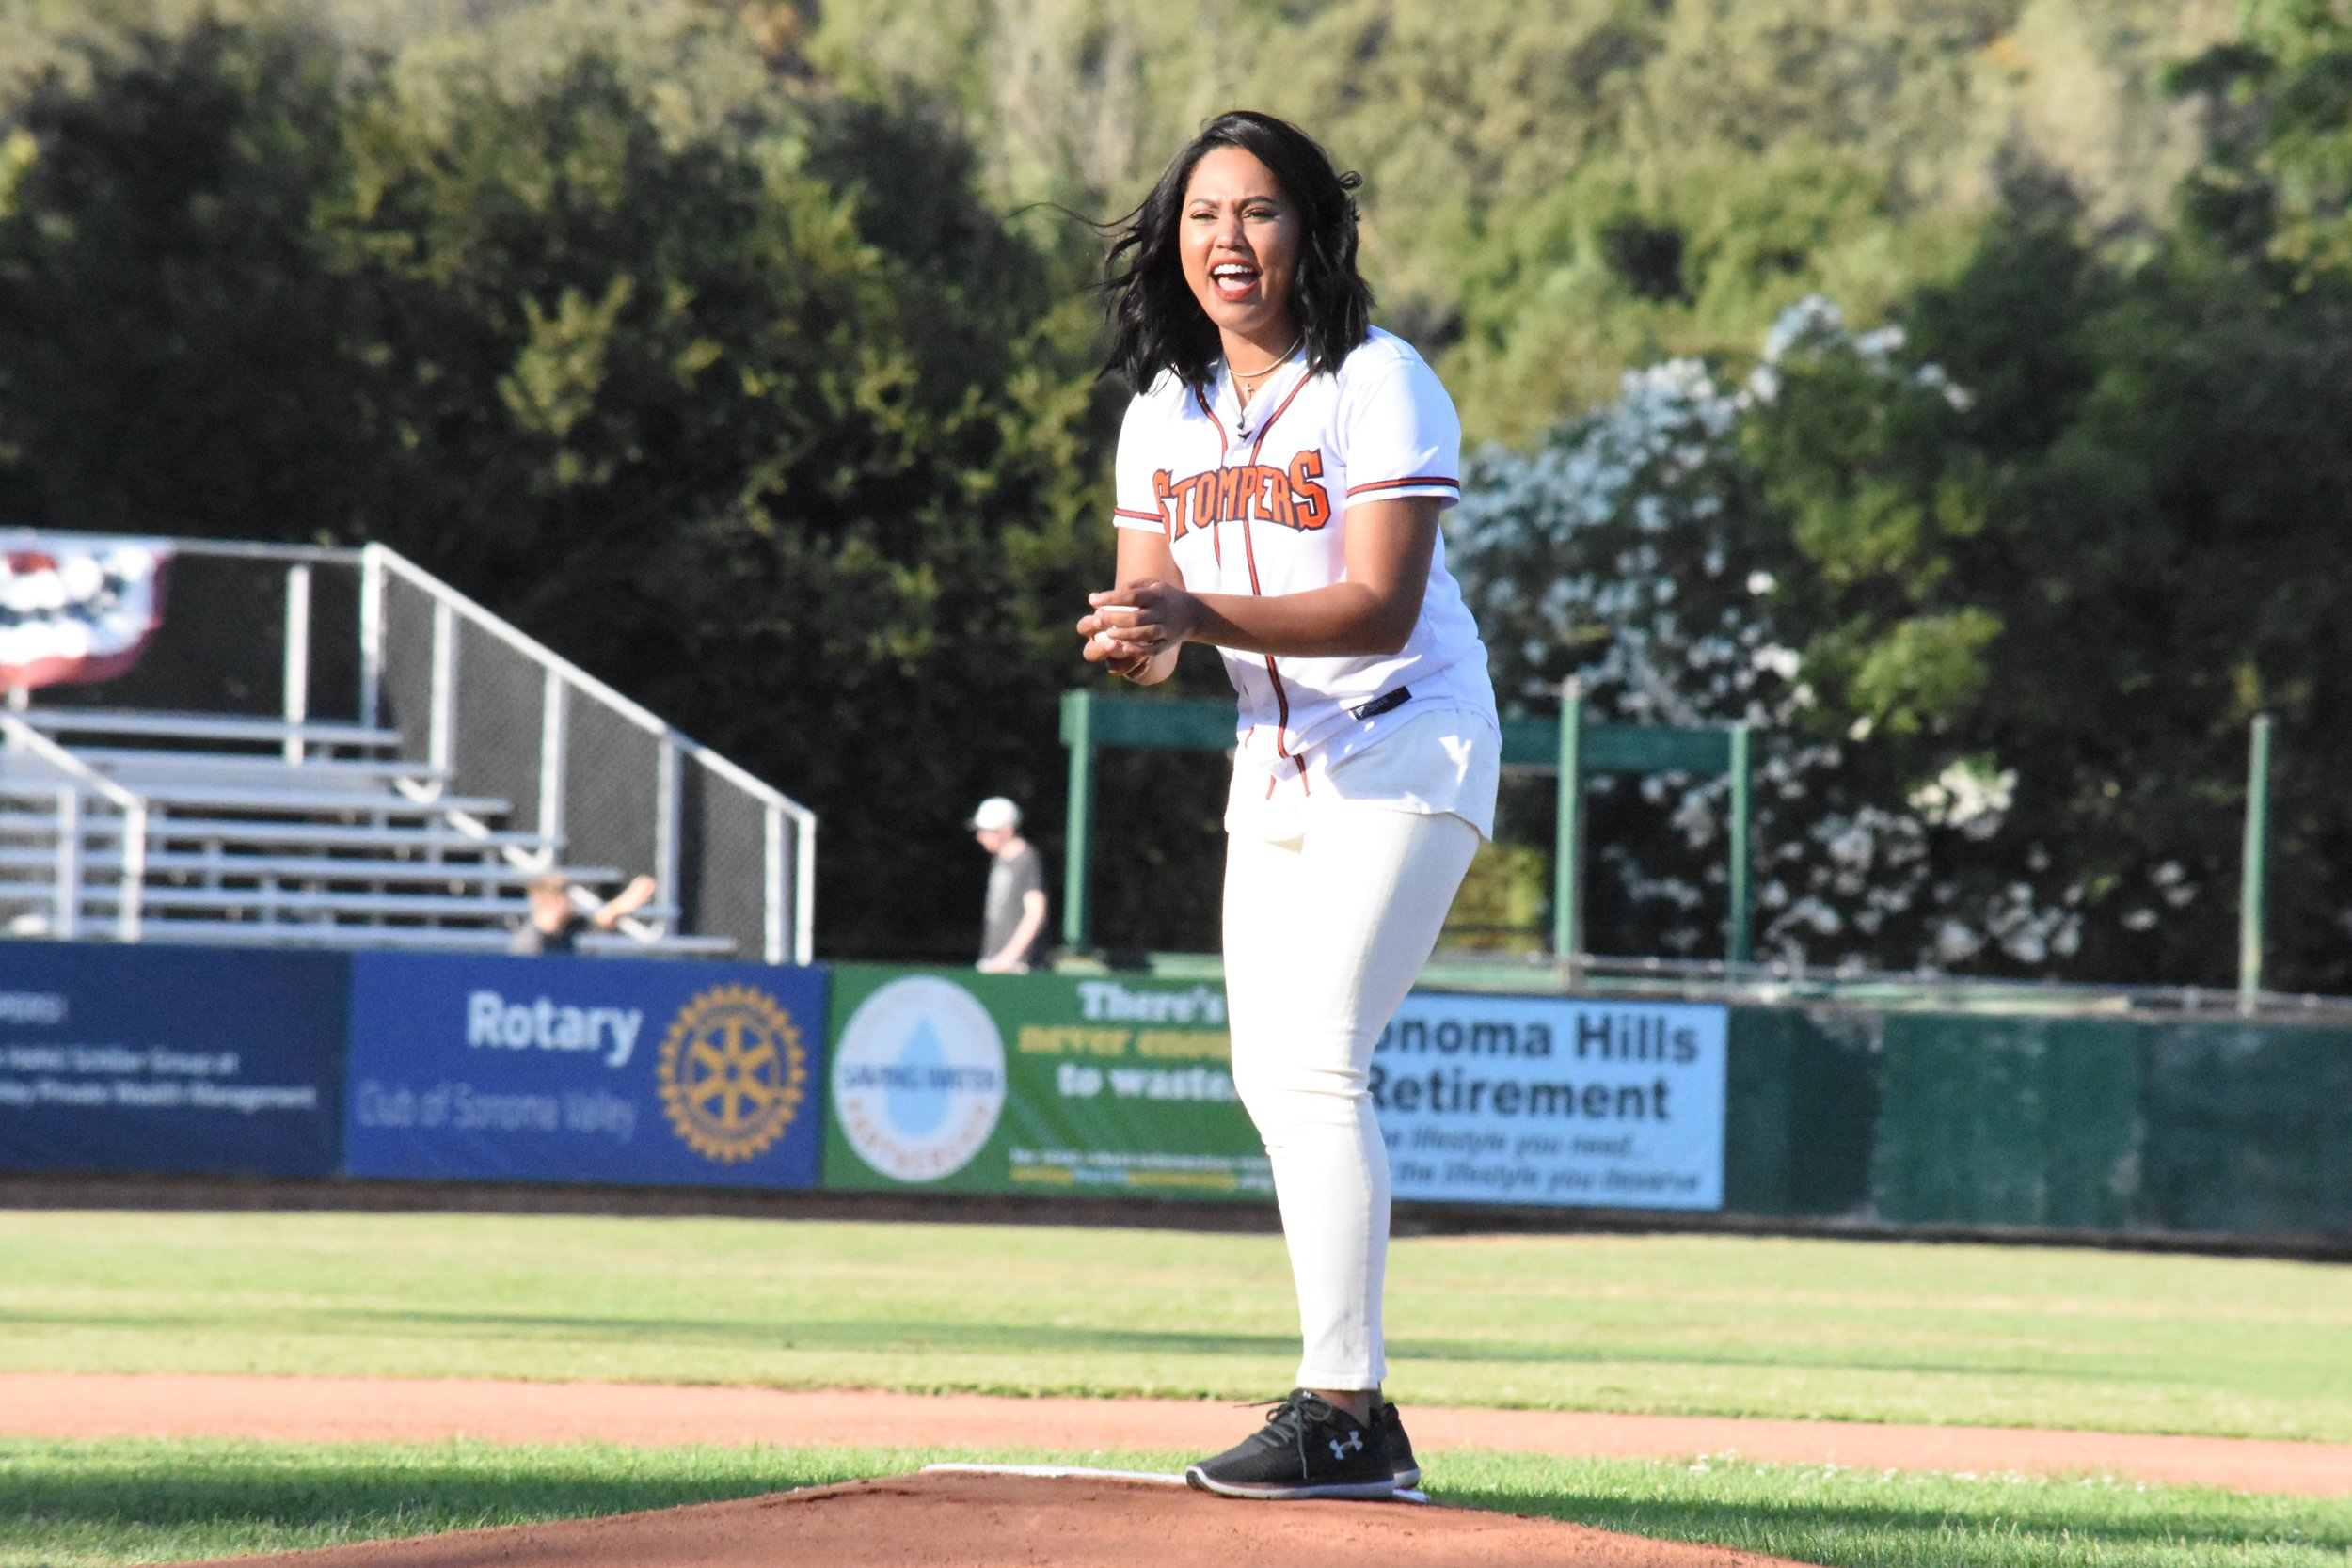 Ayesha Curry thorws the first pitch at Peoples Home Equity Ballpark at Arnold Field before the Sonoma Stompers defeated the San Rafael Pacifics 12-7. (James W. Toy III / Sonoma Stompers)